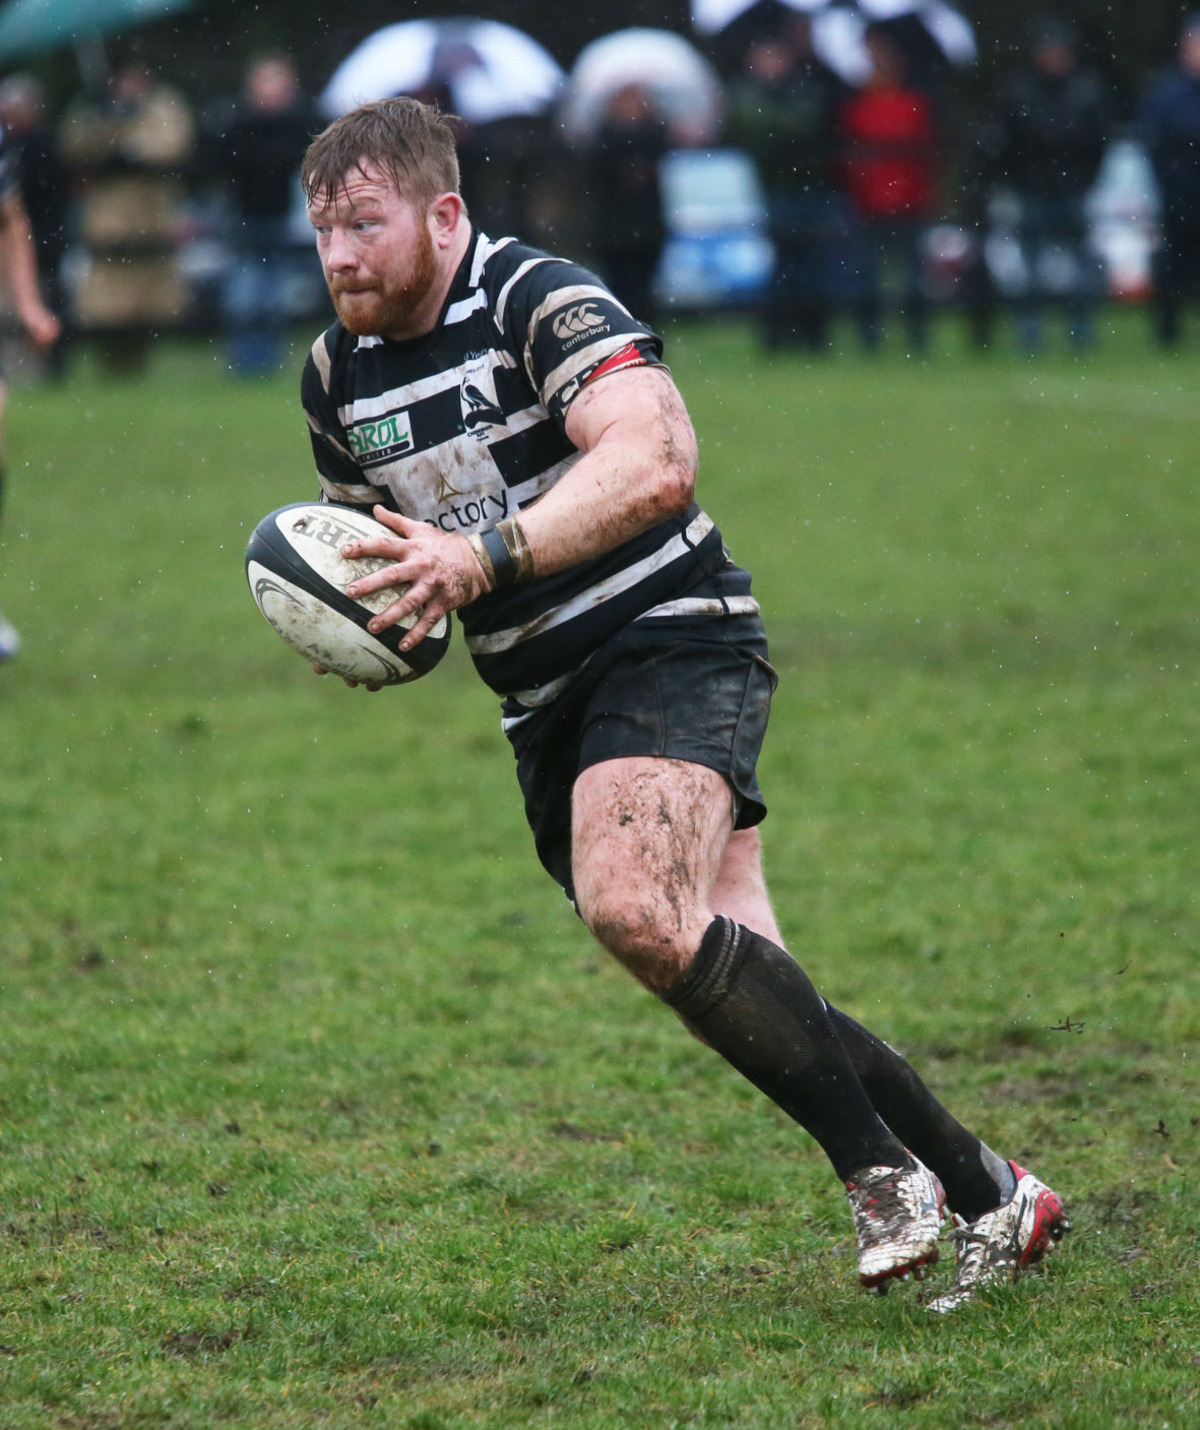 Joe Winpenny returns for Chinnor after concussion